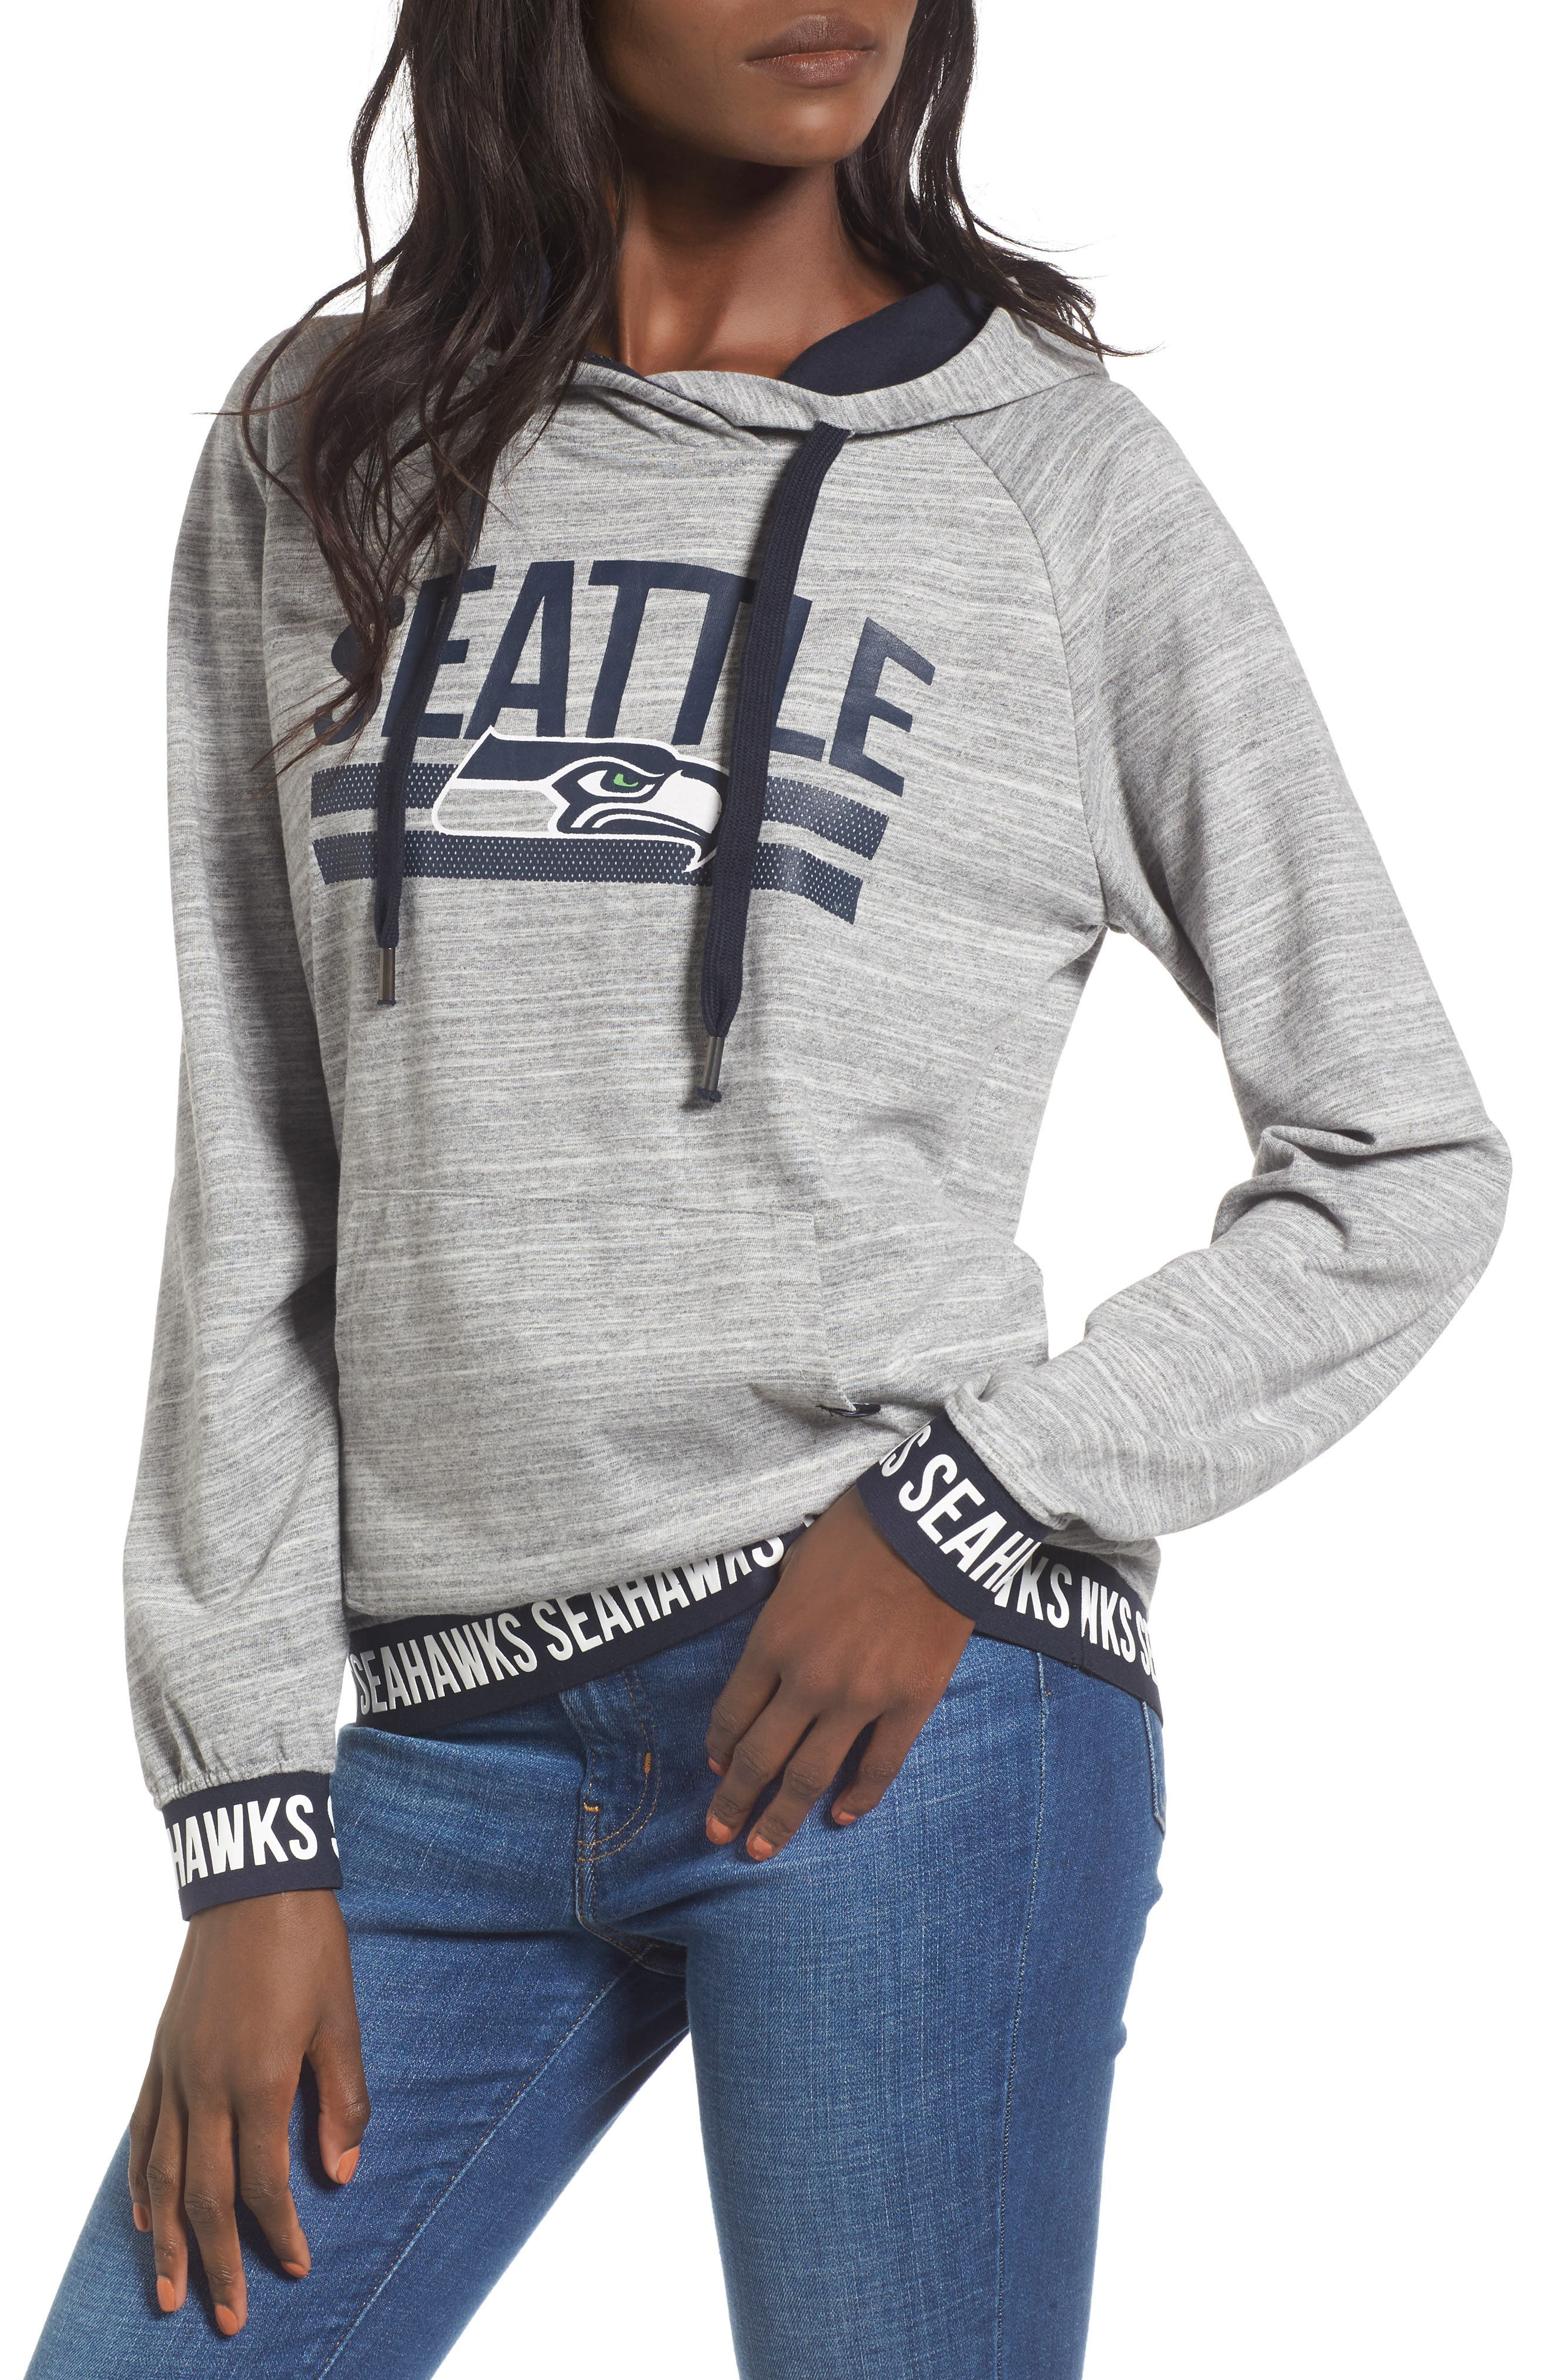 Revolve - Seattle Seahawks Hoodie,                         Main,                         color, 020